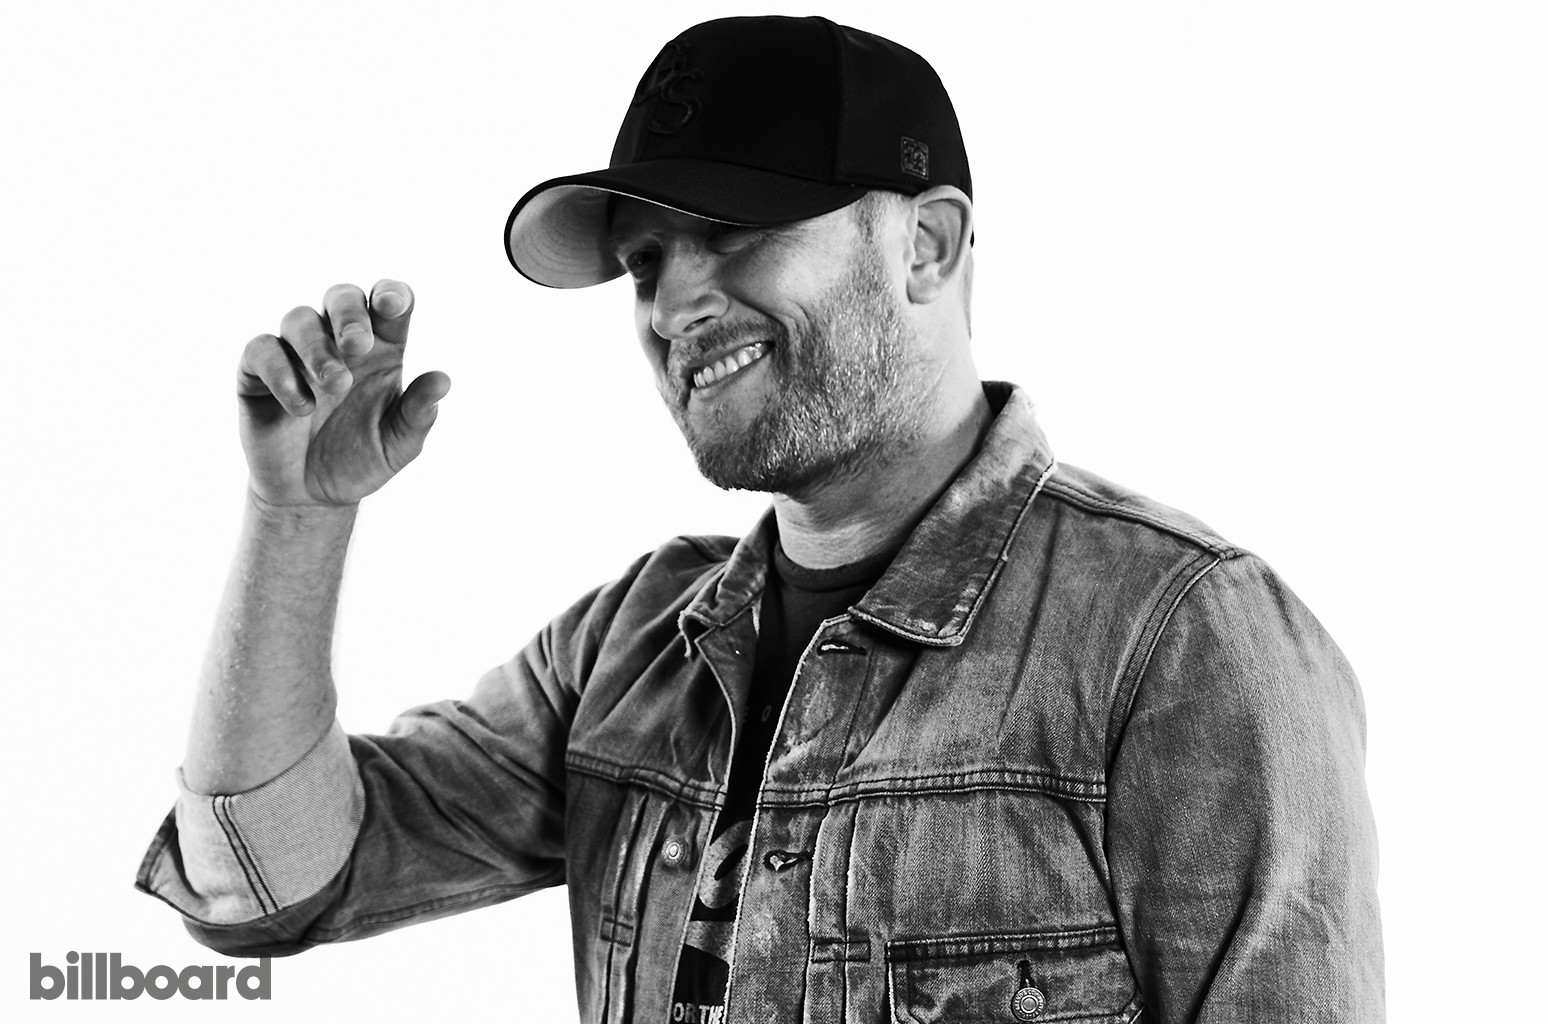 Cole Swindell photographed on June 8, 2017 at Nissan Stadium in Nashville, Tenn.